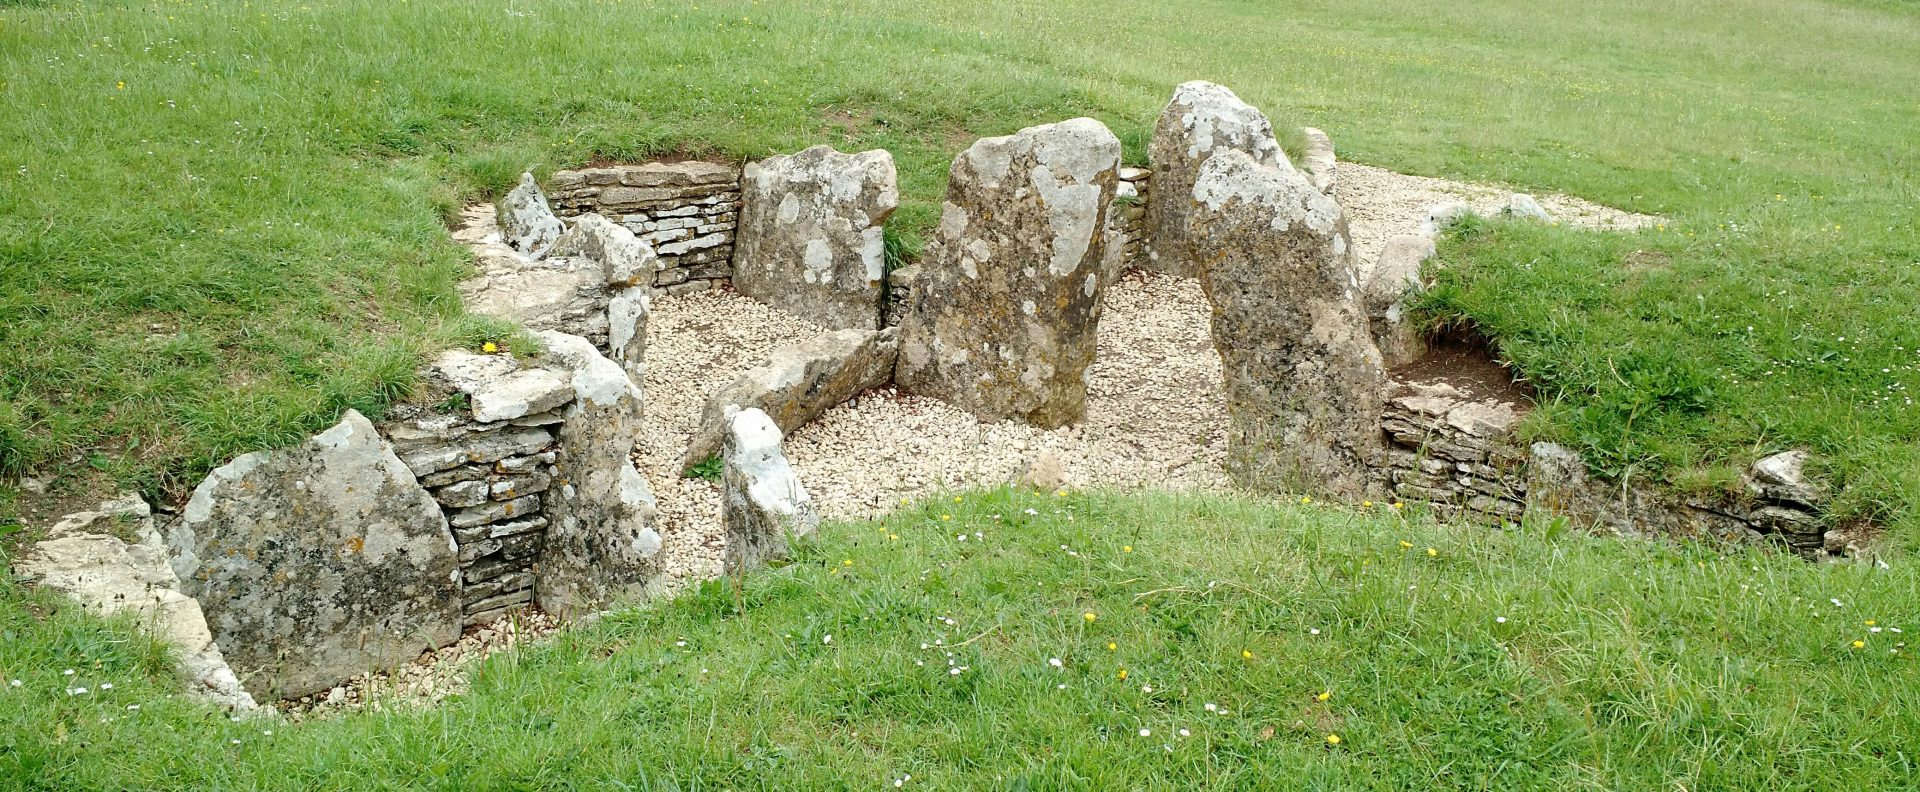 Nympsfield Long Barrow, Coaley Peak, Neolithic 5000 years old burial mound, Cotswolds